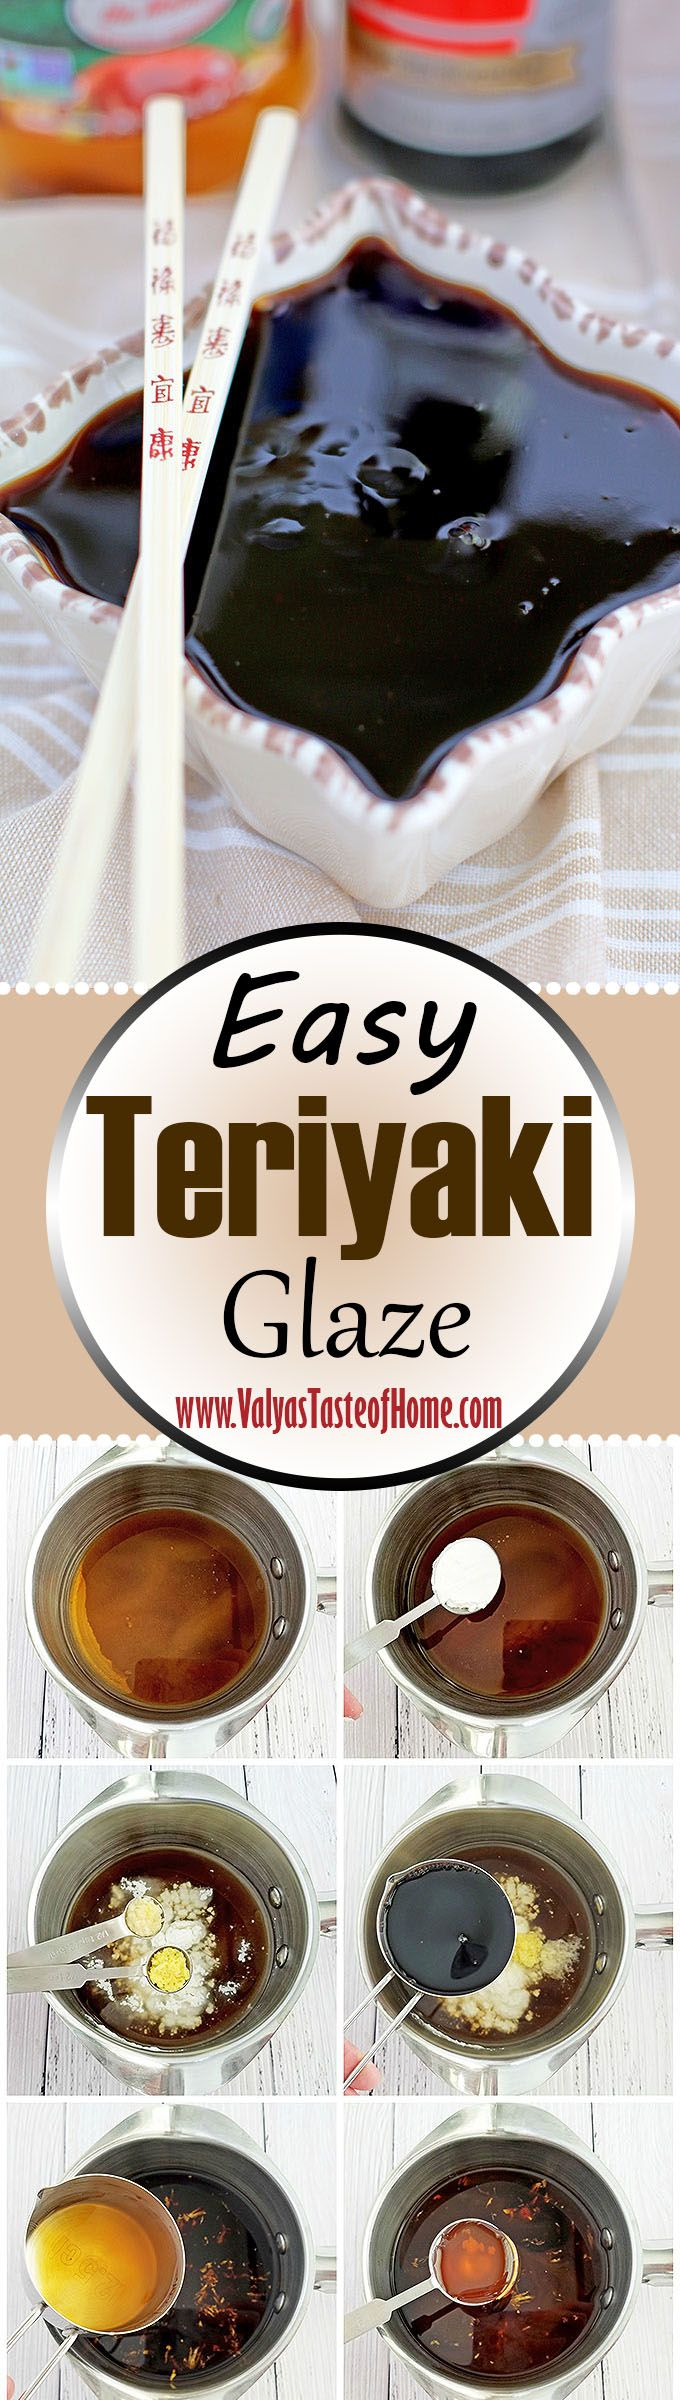 This tasty glaze is prepared in a much cleaner way, without additional chemicals, tastes fresh and delicious. It's so easy to prepare and makes any meat of your choice delicious, zesty, so tender and tasty that you would not believe. The glaze is aromatic, sharp but sweet, incredibly smooth, and best of all - simple. | www.valyastasteofhome.com